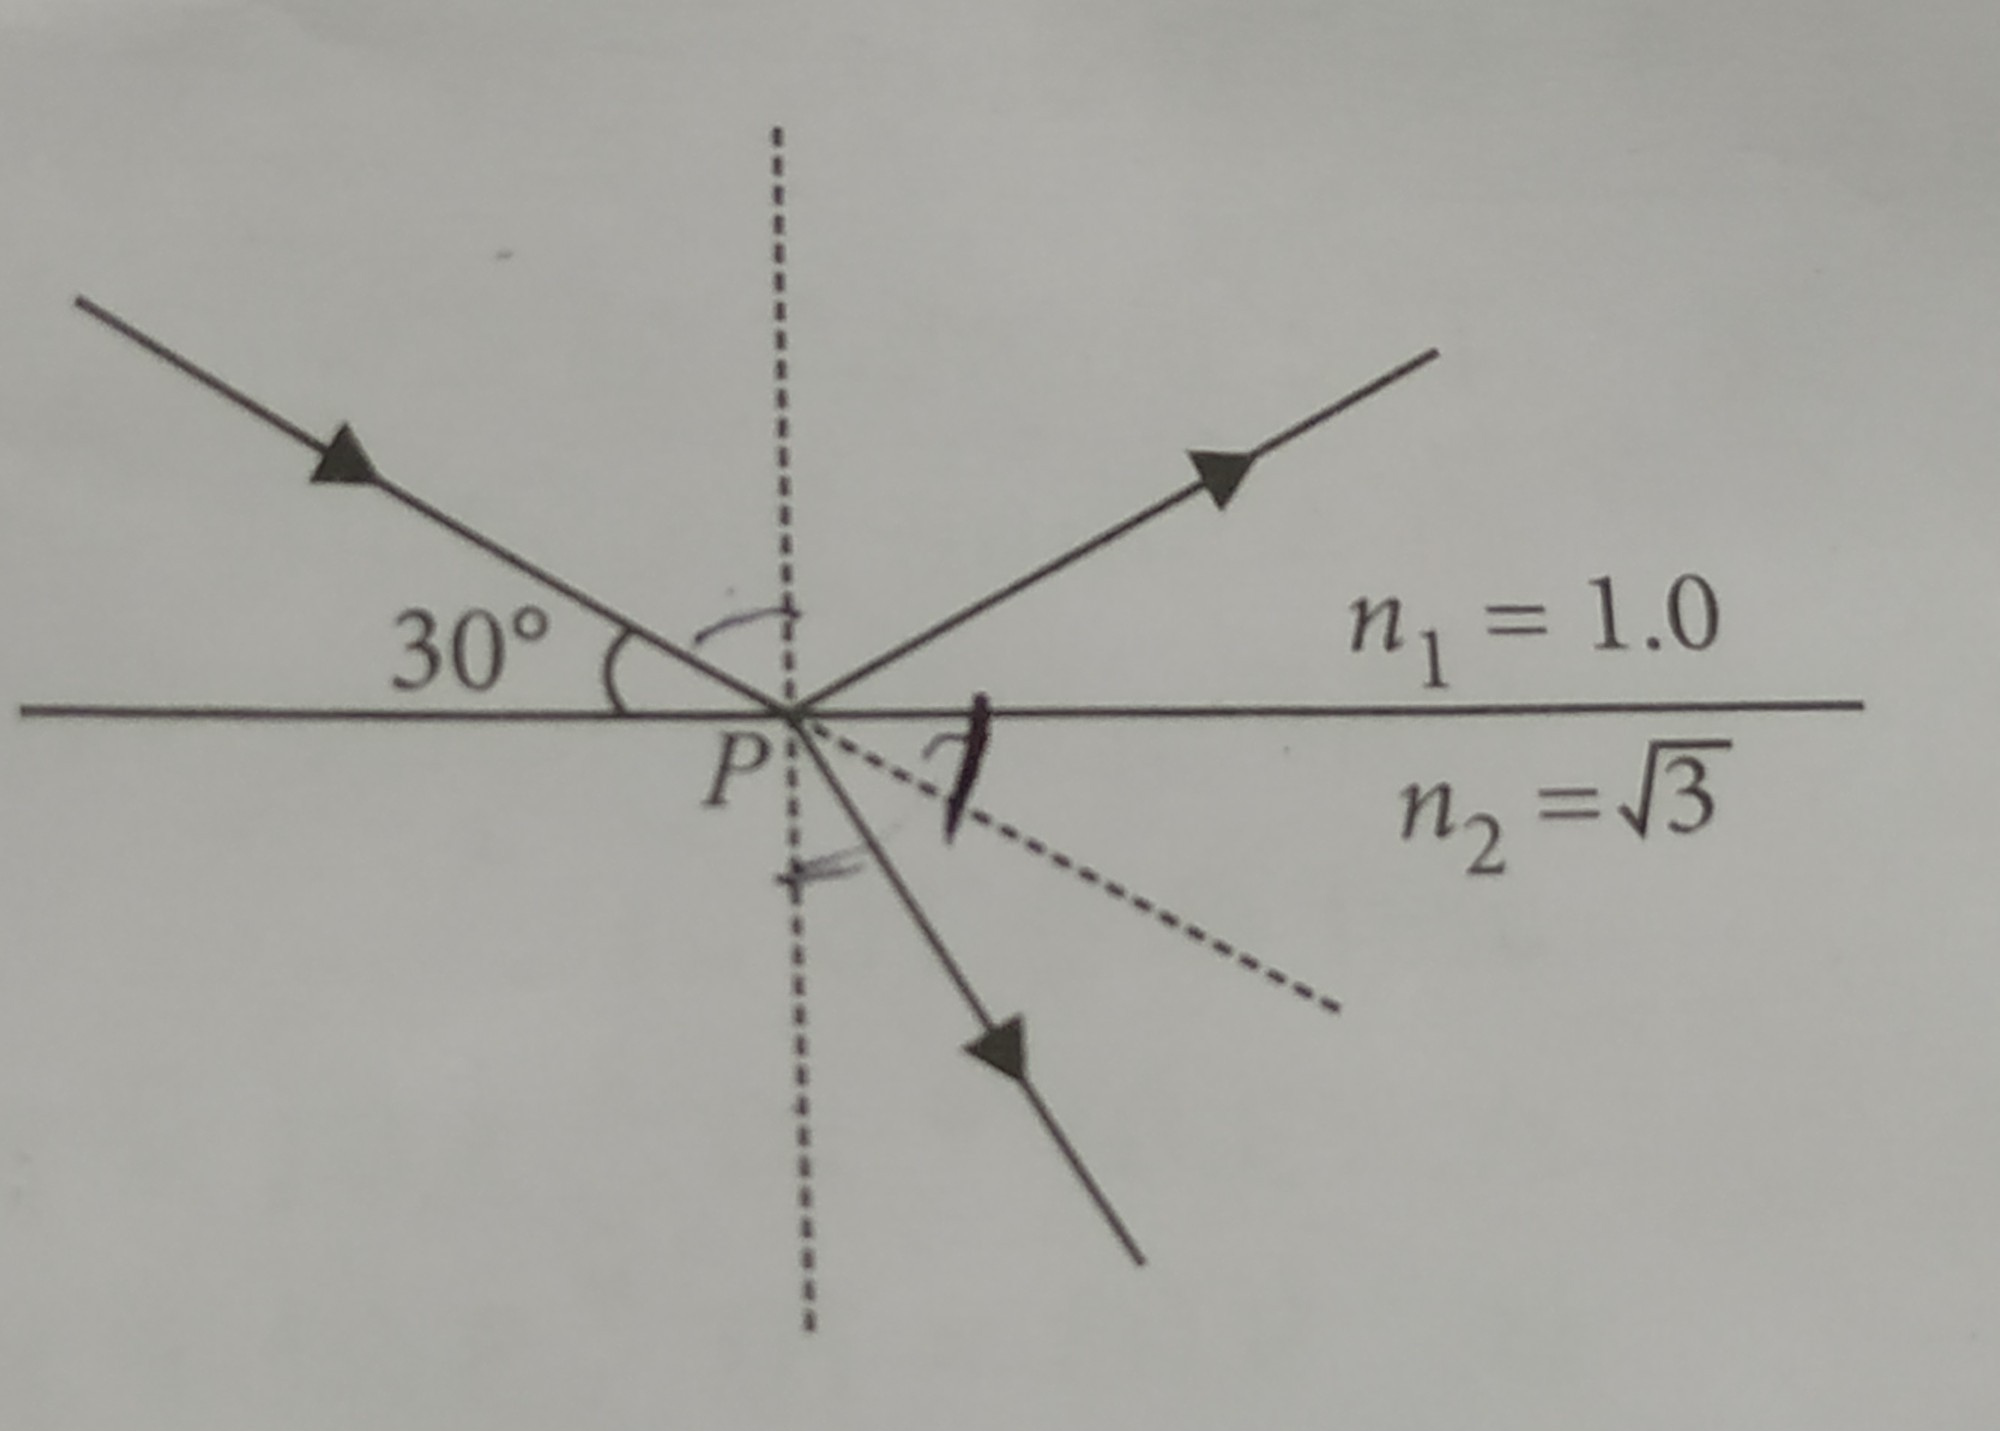 hight resolution of a beam of light reflects and refracts at point p as shown in the the diagram find the angle of refraction at point p n1 and n2 are refractive indices of